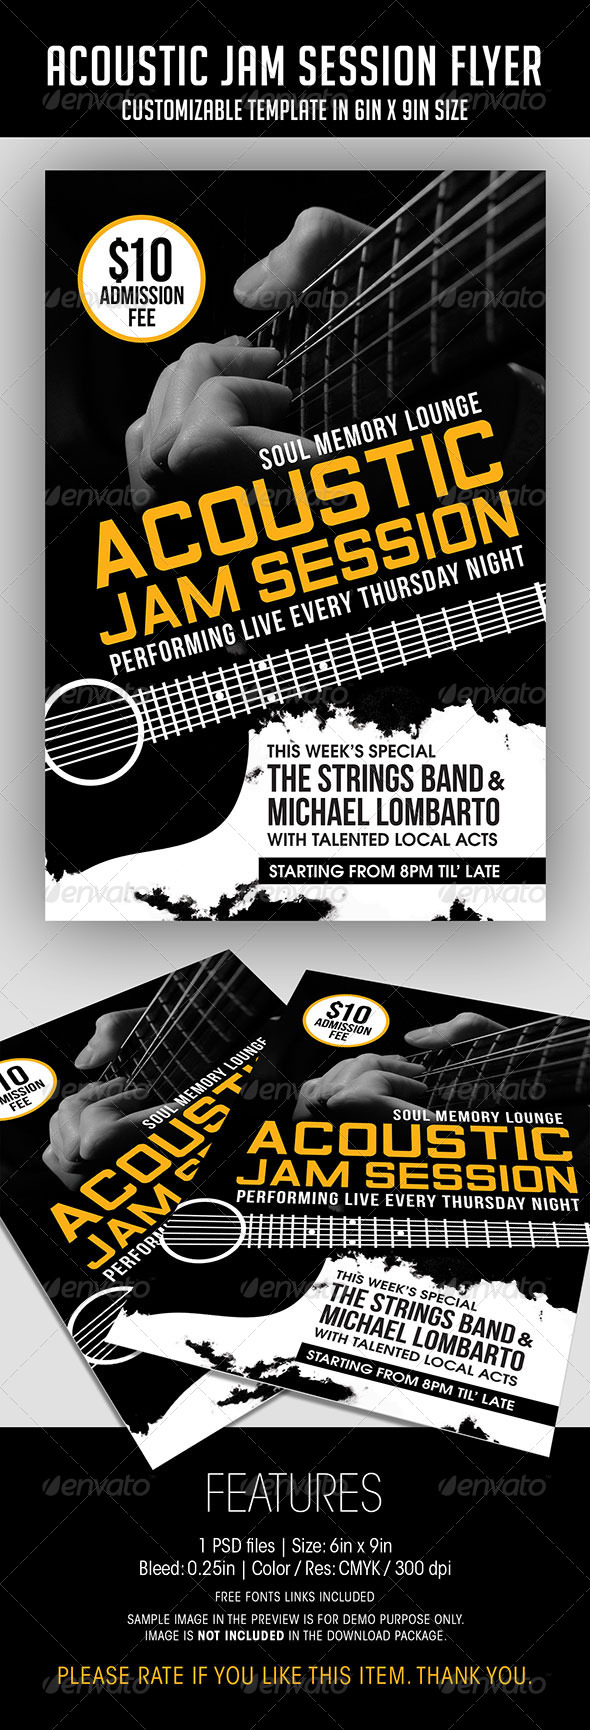 Acoustic Jam Session Flyer - Concerts Events